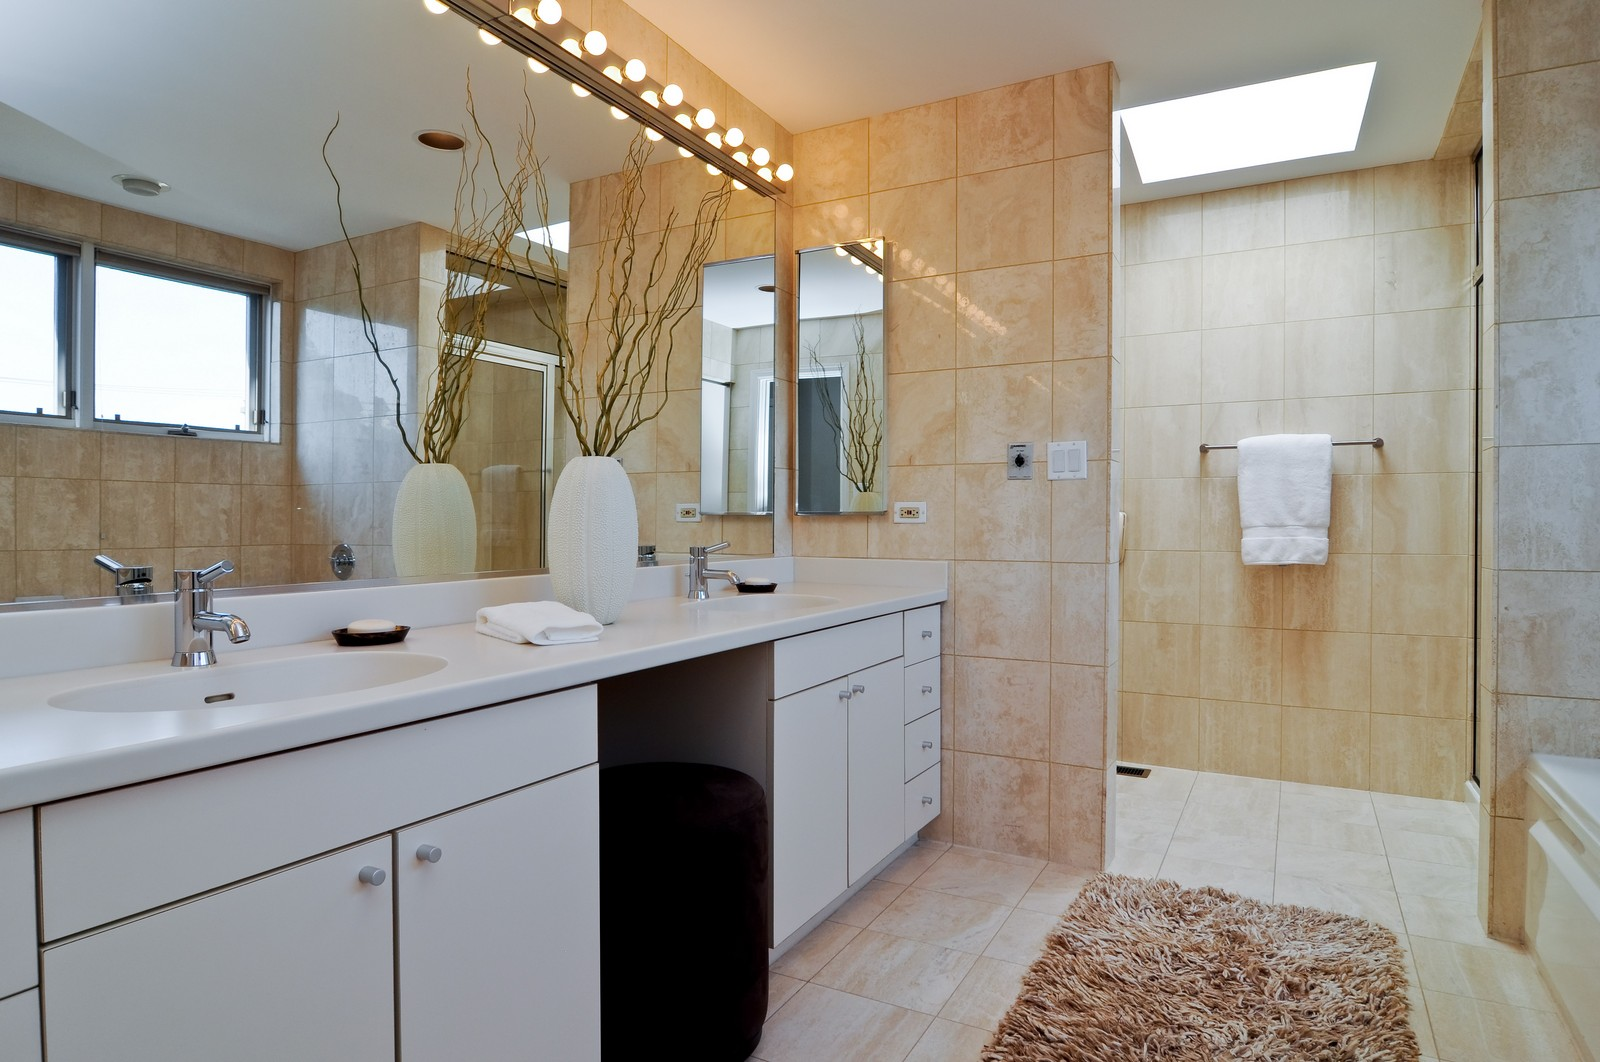 Real Estate Photography - 1943 N Maud, Chicago, IL, 60614 - Master Bathroom